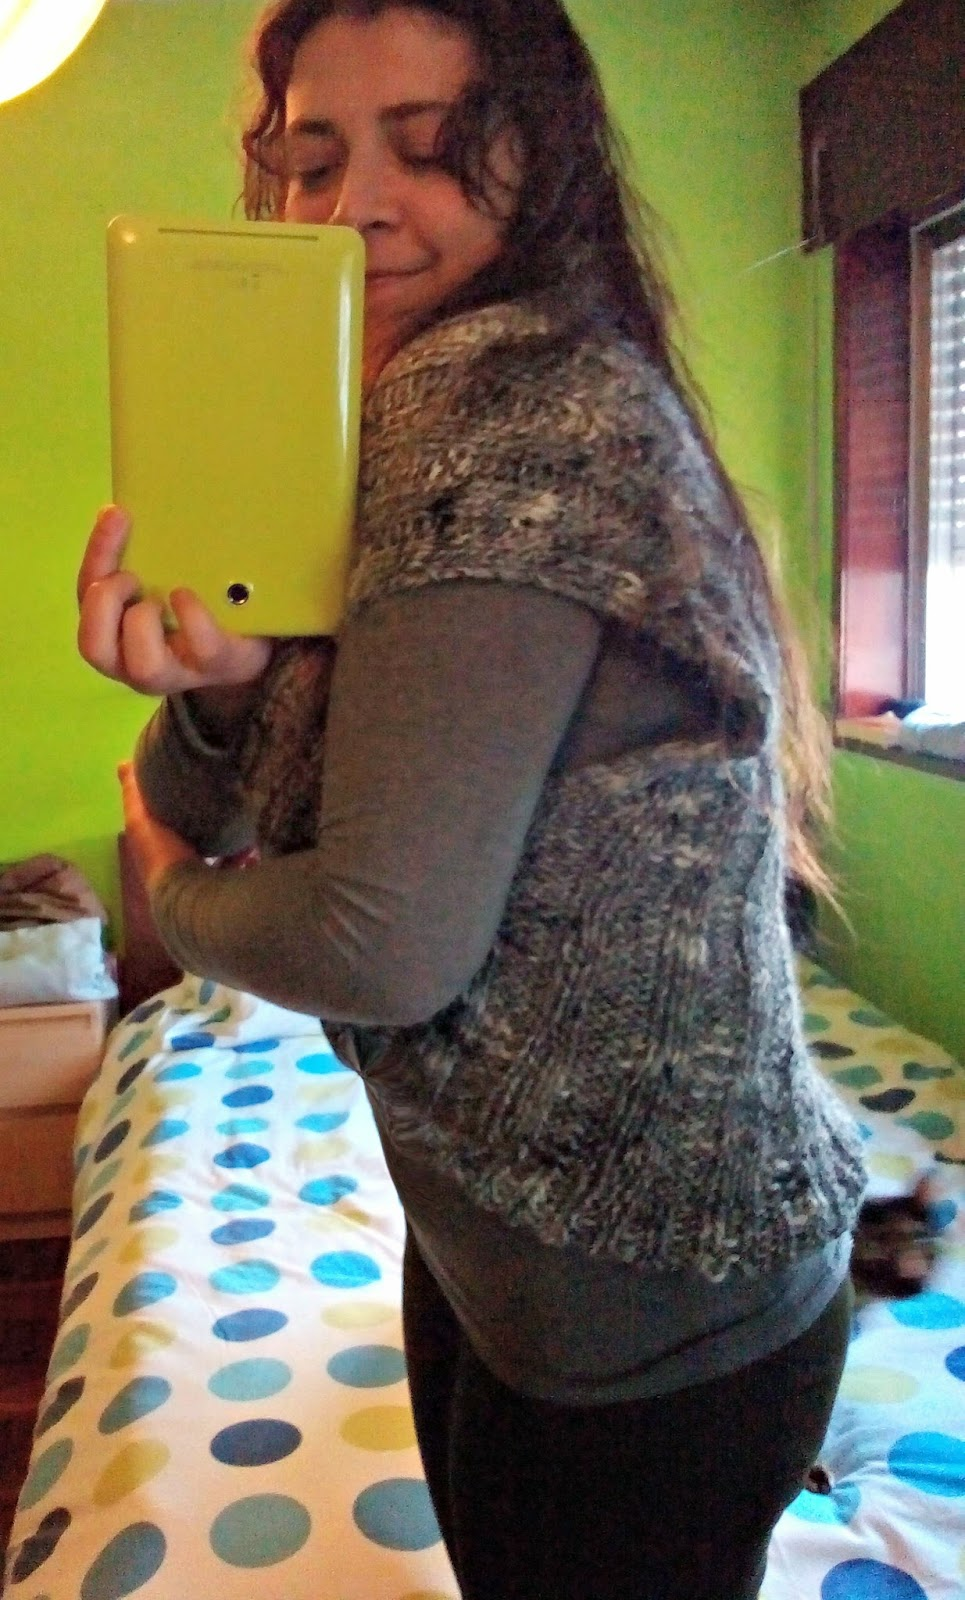 Knitting Patterns For Shrugs With Shawl Collar : The Anarchist Knitter: Shawl Collar Vest/Shrug